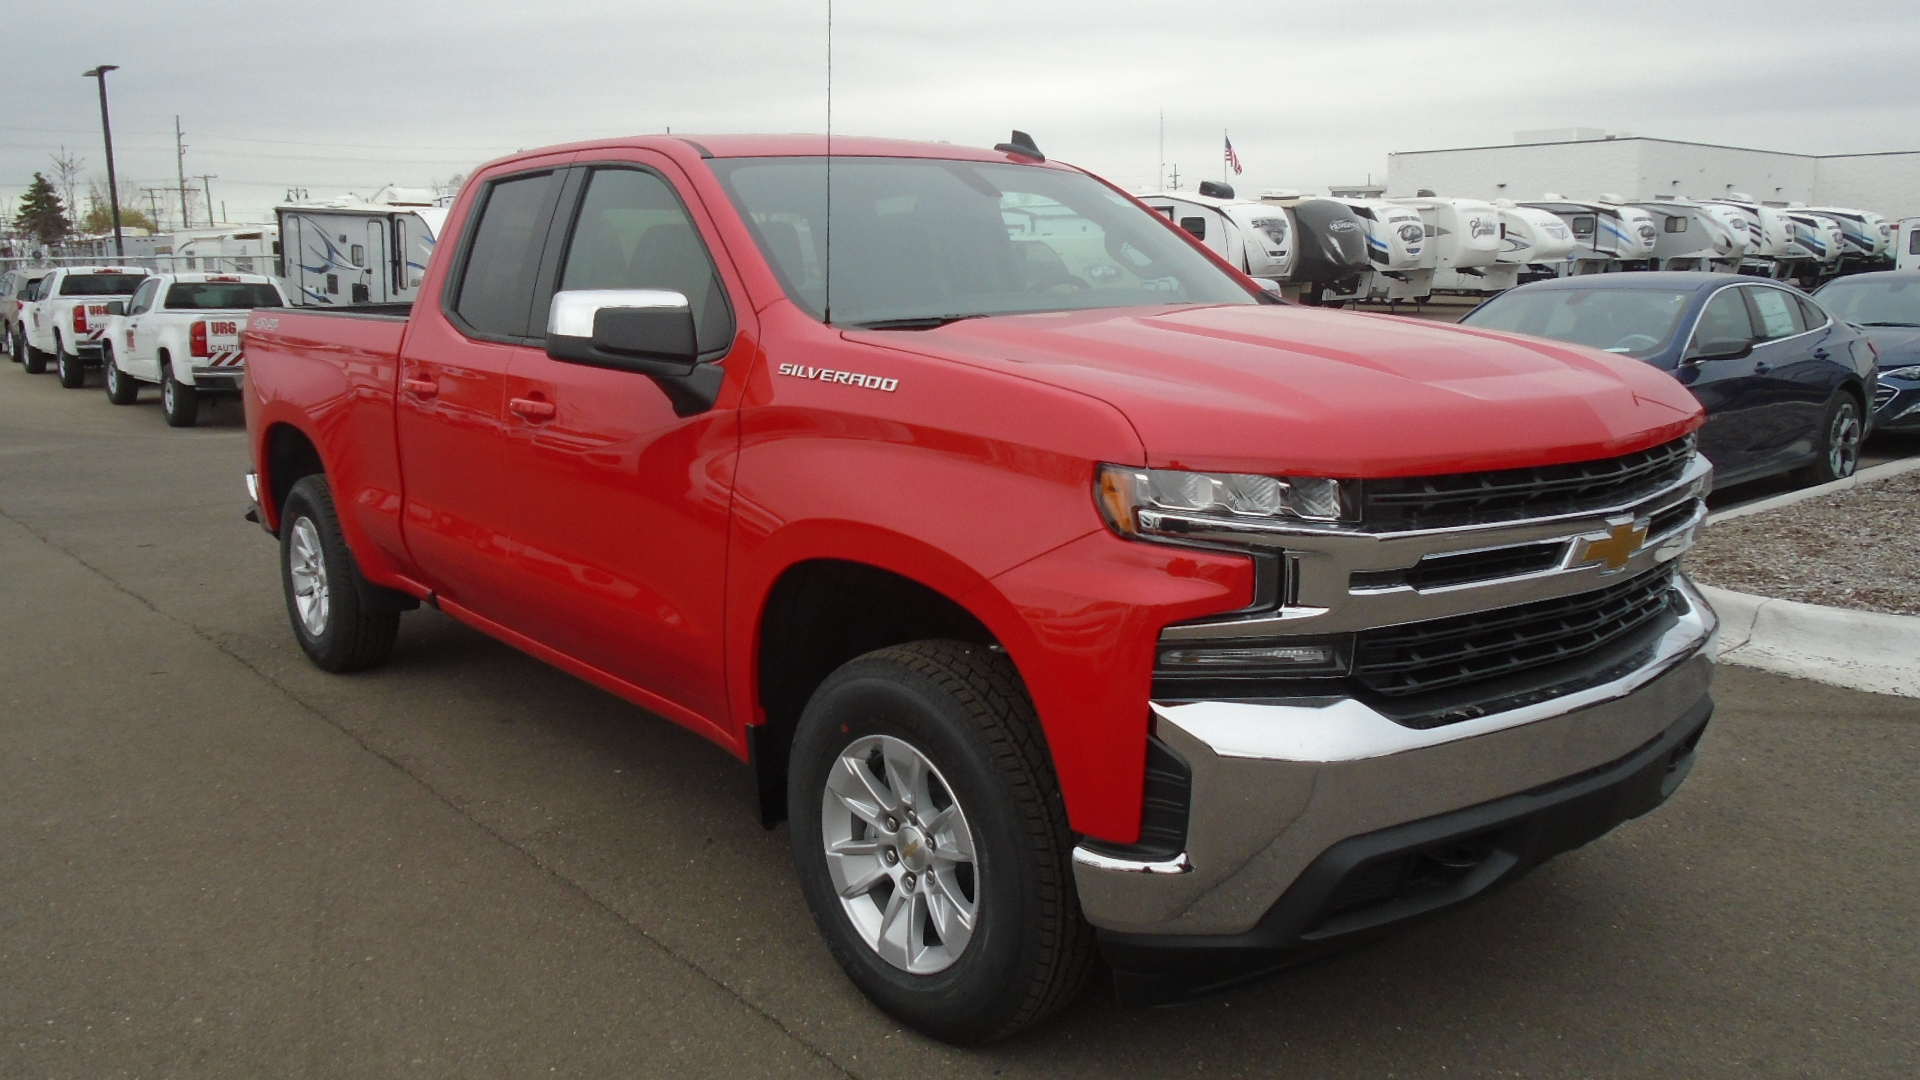 2019 Silverado 1500 Double Cab 4x4,  Pickup #82974 - photo 1